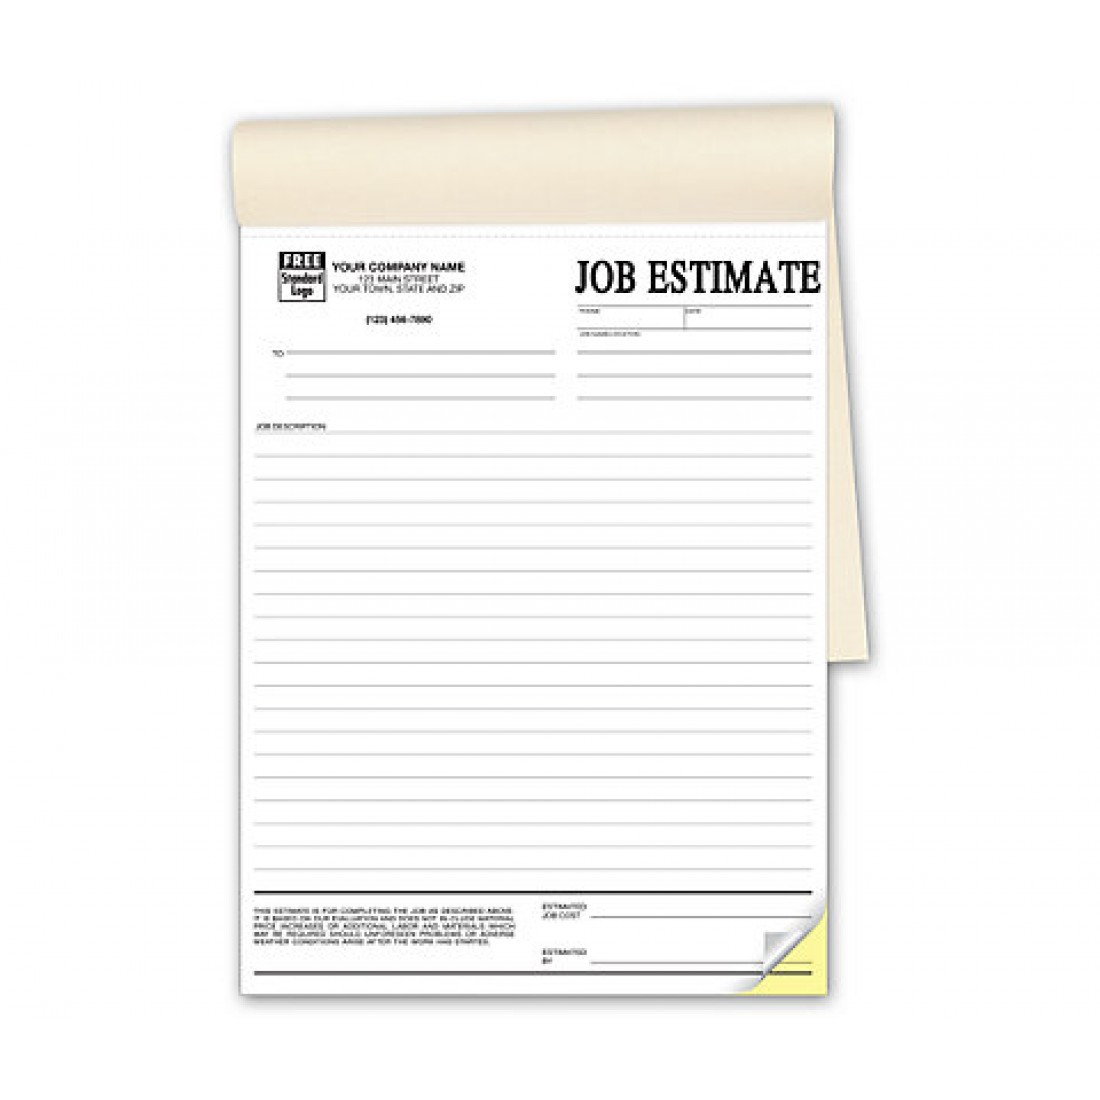 duplicate job estimate forms in books shipping duplicate job estimate forms